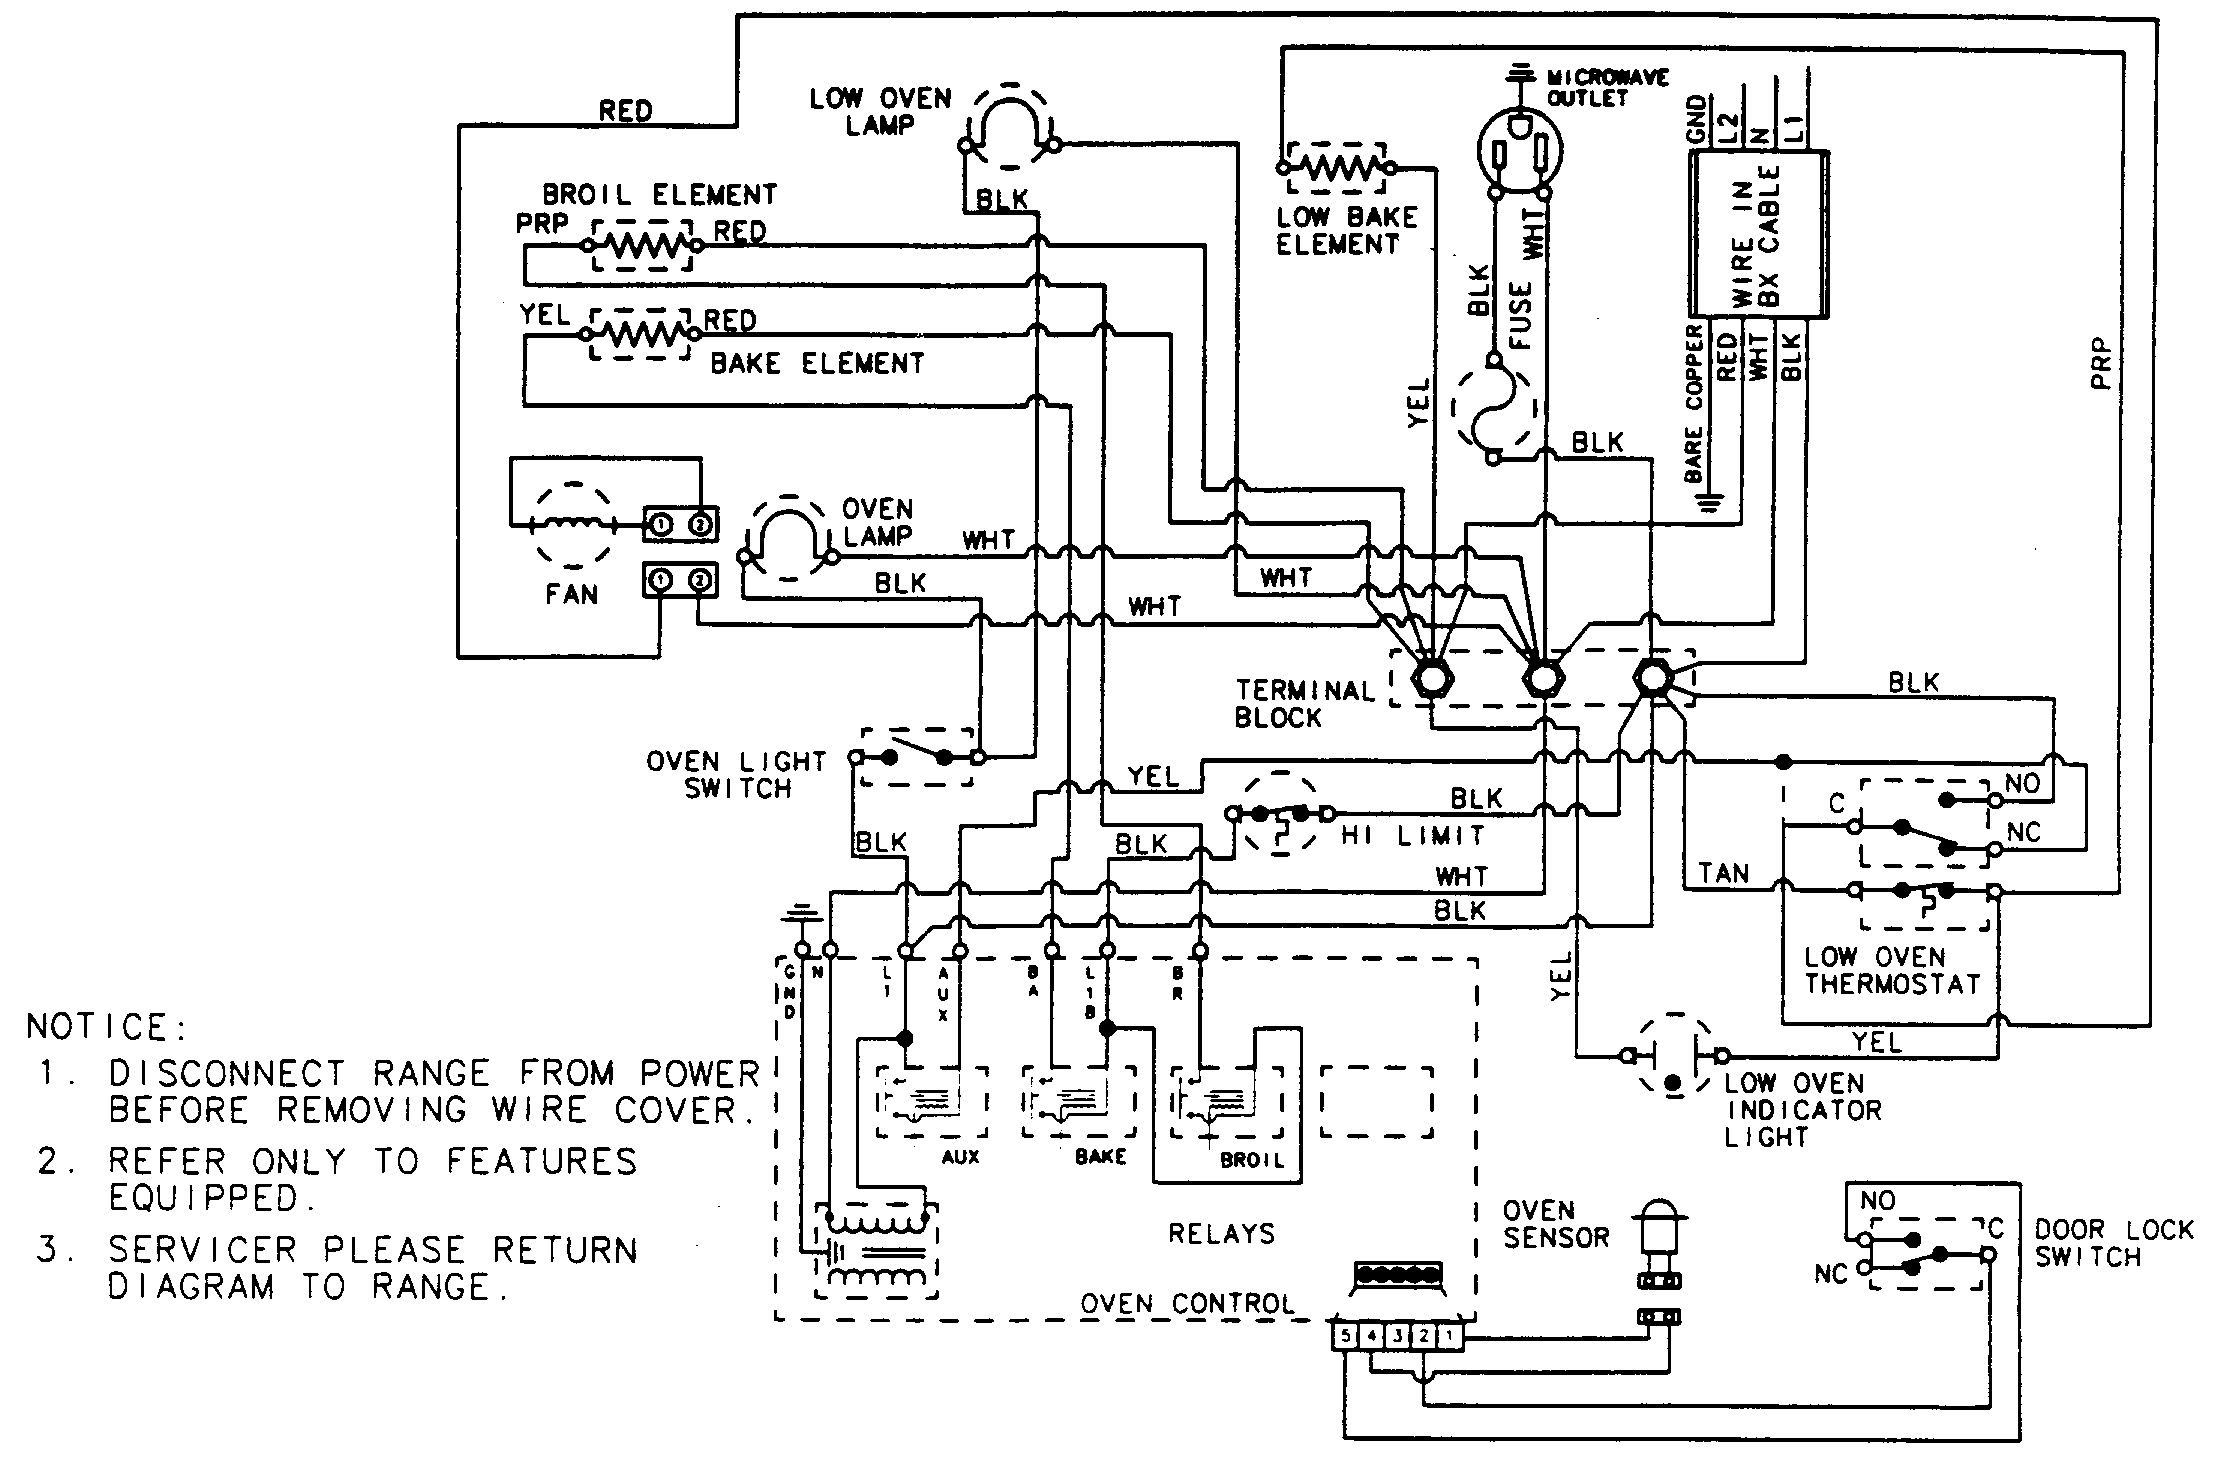 Wiring Diagram Get Free Image About Wiring Diagram On